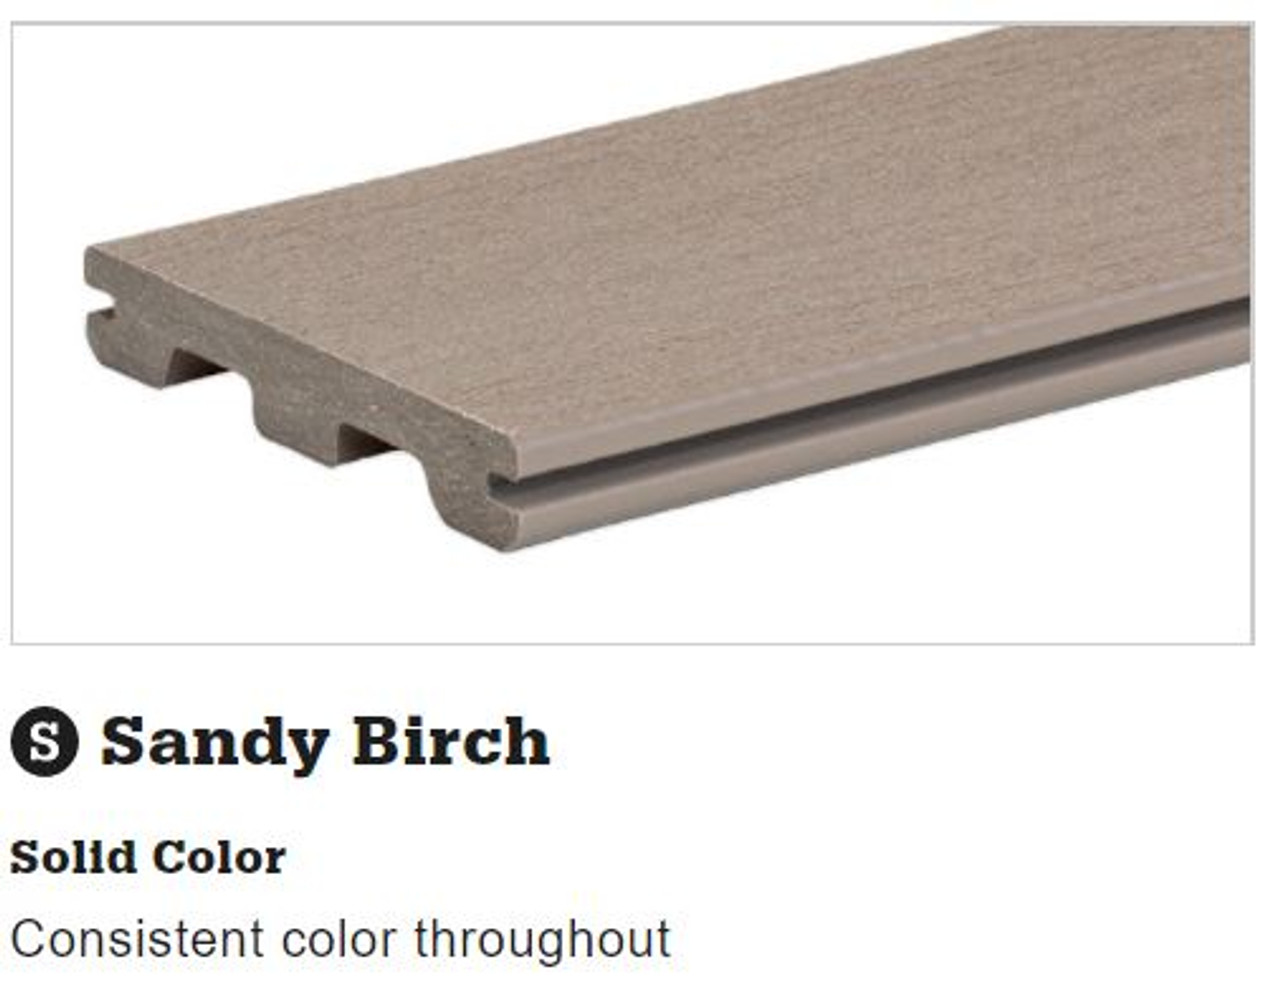 TimberTech Terrain Sandy Birch Grooved Decking